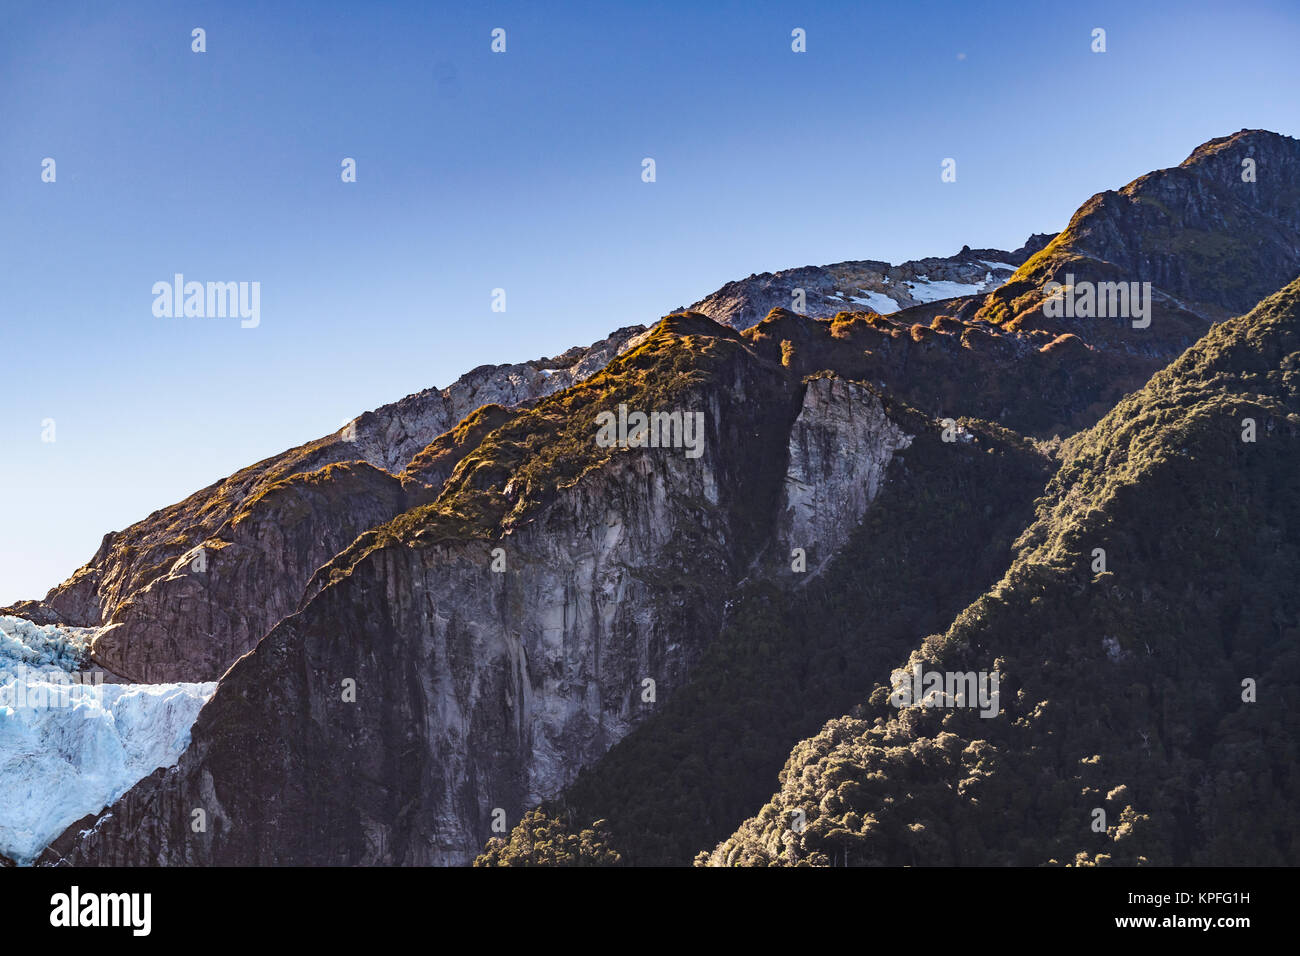 Queulat mountain with glacier at top at queulat national park, Aysen, Chile - Stock Image